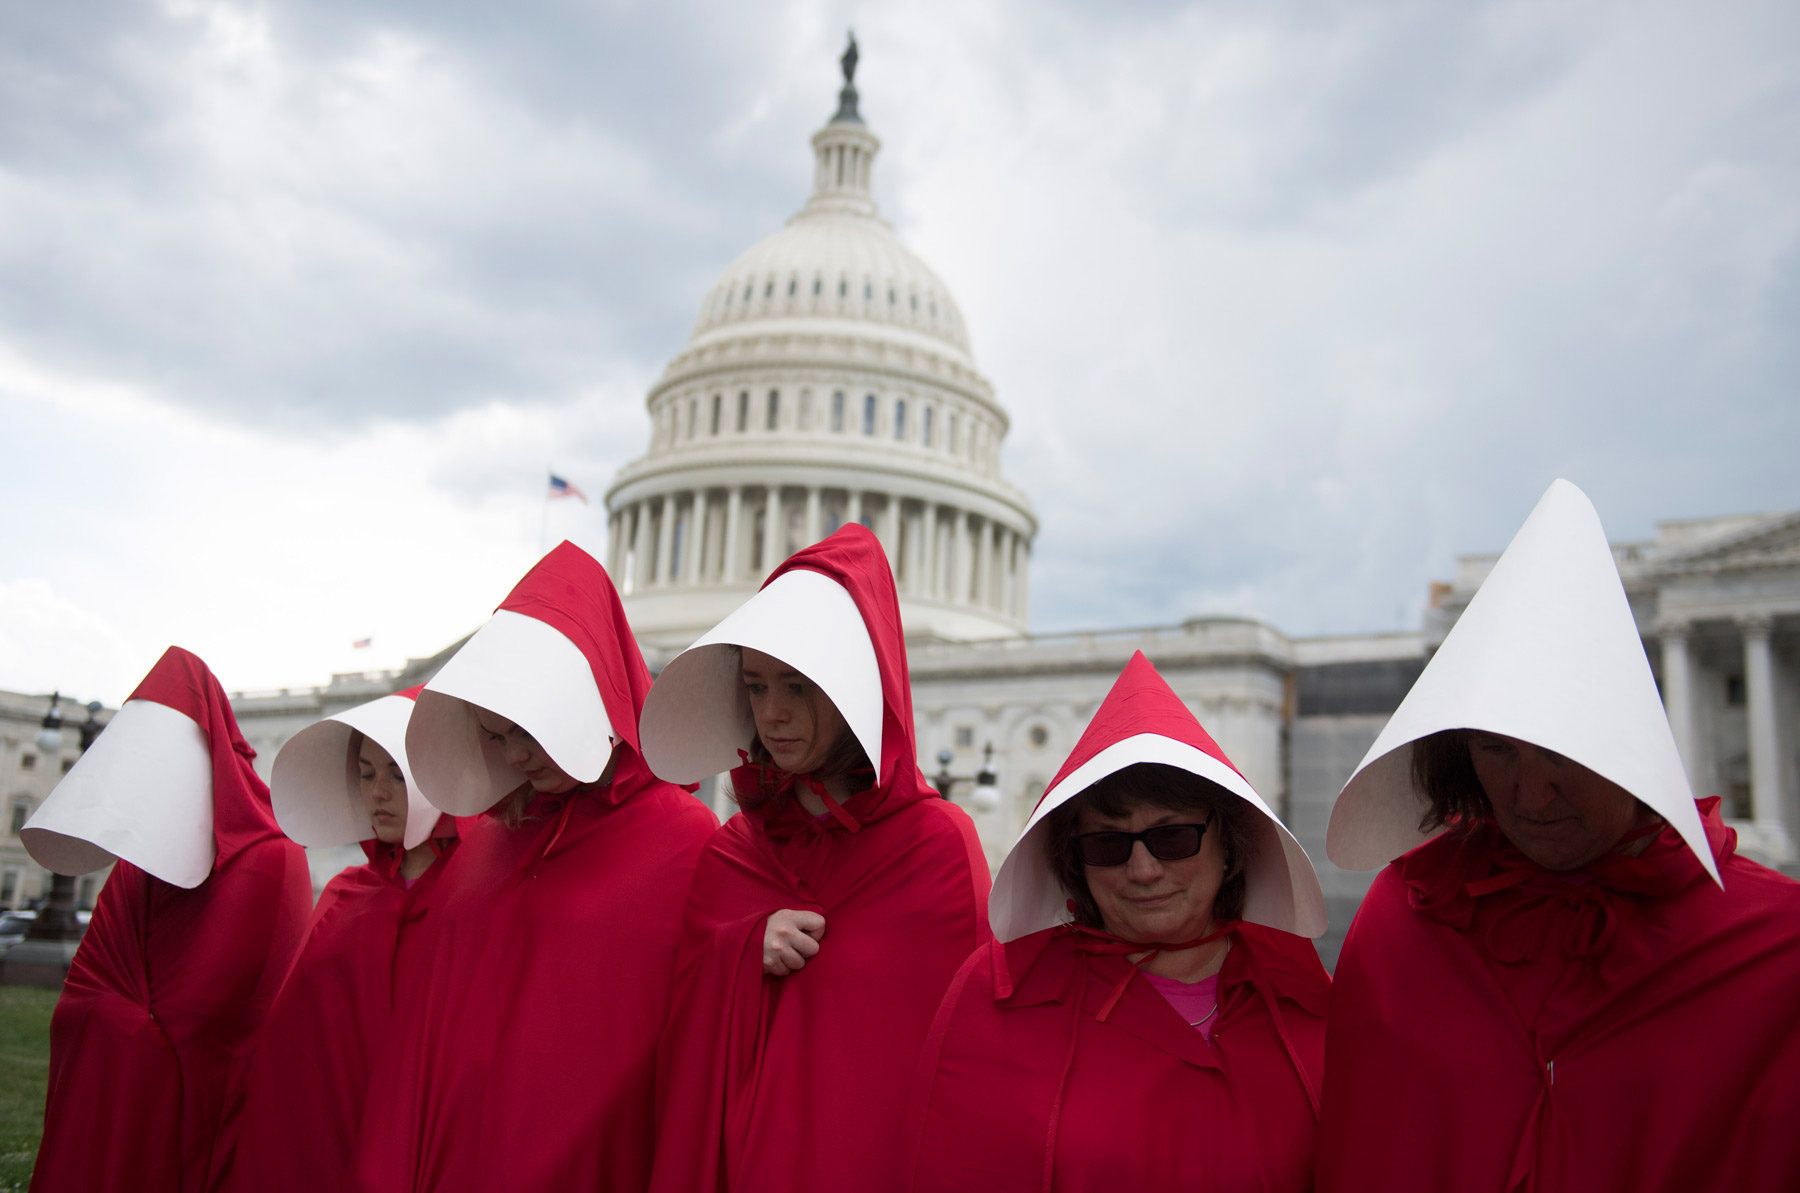 """Supporters of Planned Parenthood dressed as characters from """"The Handmaid's Tale,"""" hold a rally as they protest the US Senate Republicans' healthcare bill outside the US Capitol in Washington, DC, June 27, 2017. / AFP PHOTO / SAUL LOEB (Photo credit should read SAUL LOEB/AFP via Getty Images)"""